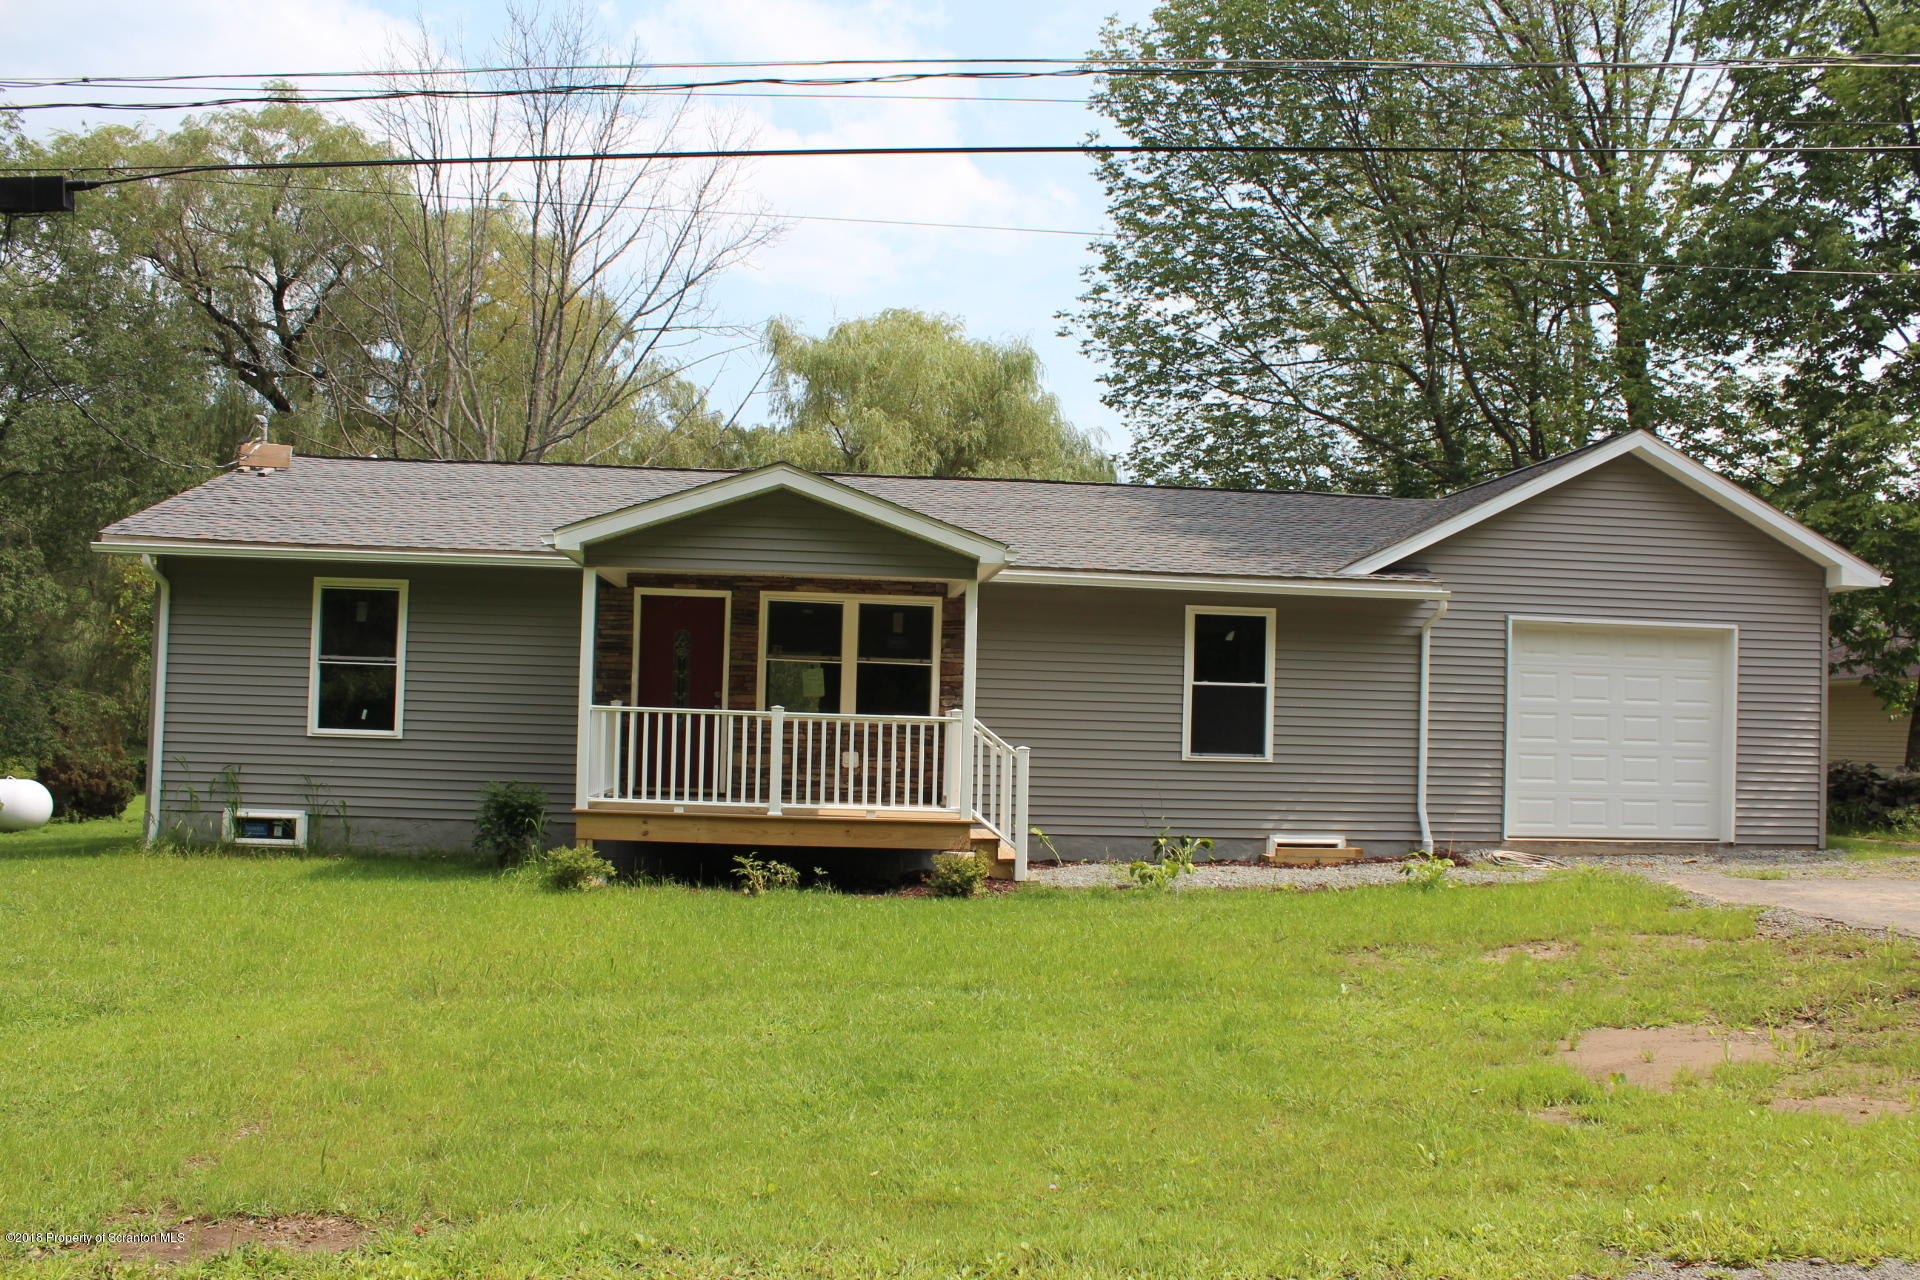 174 poor farm rd, Greenfield Twp, Pennsylvania 18407, 3 Bedrooms Bedrooms, 6 Rooms Rooms,2 BathroomsBathrooms,Single Family,For Sale,poor farm,18-4023